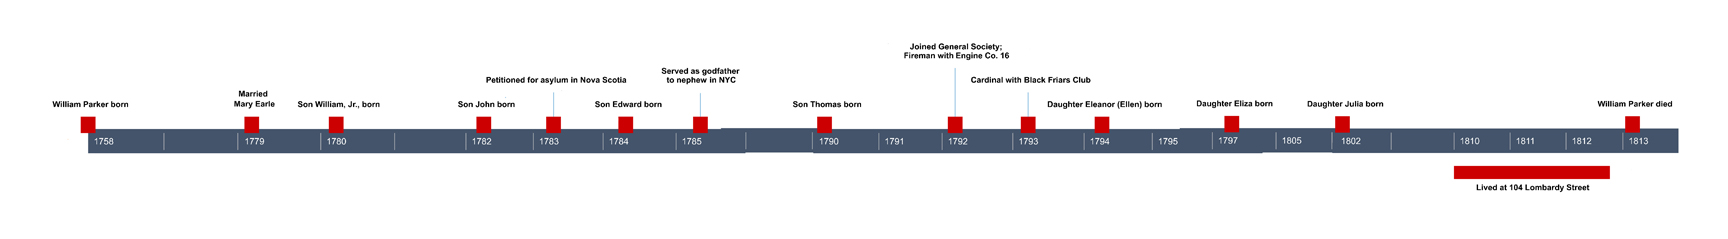 Timeline of William Parker's Life, based on research as of March 2019. Click to enlarge.